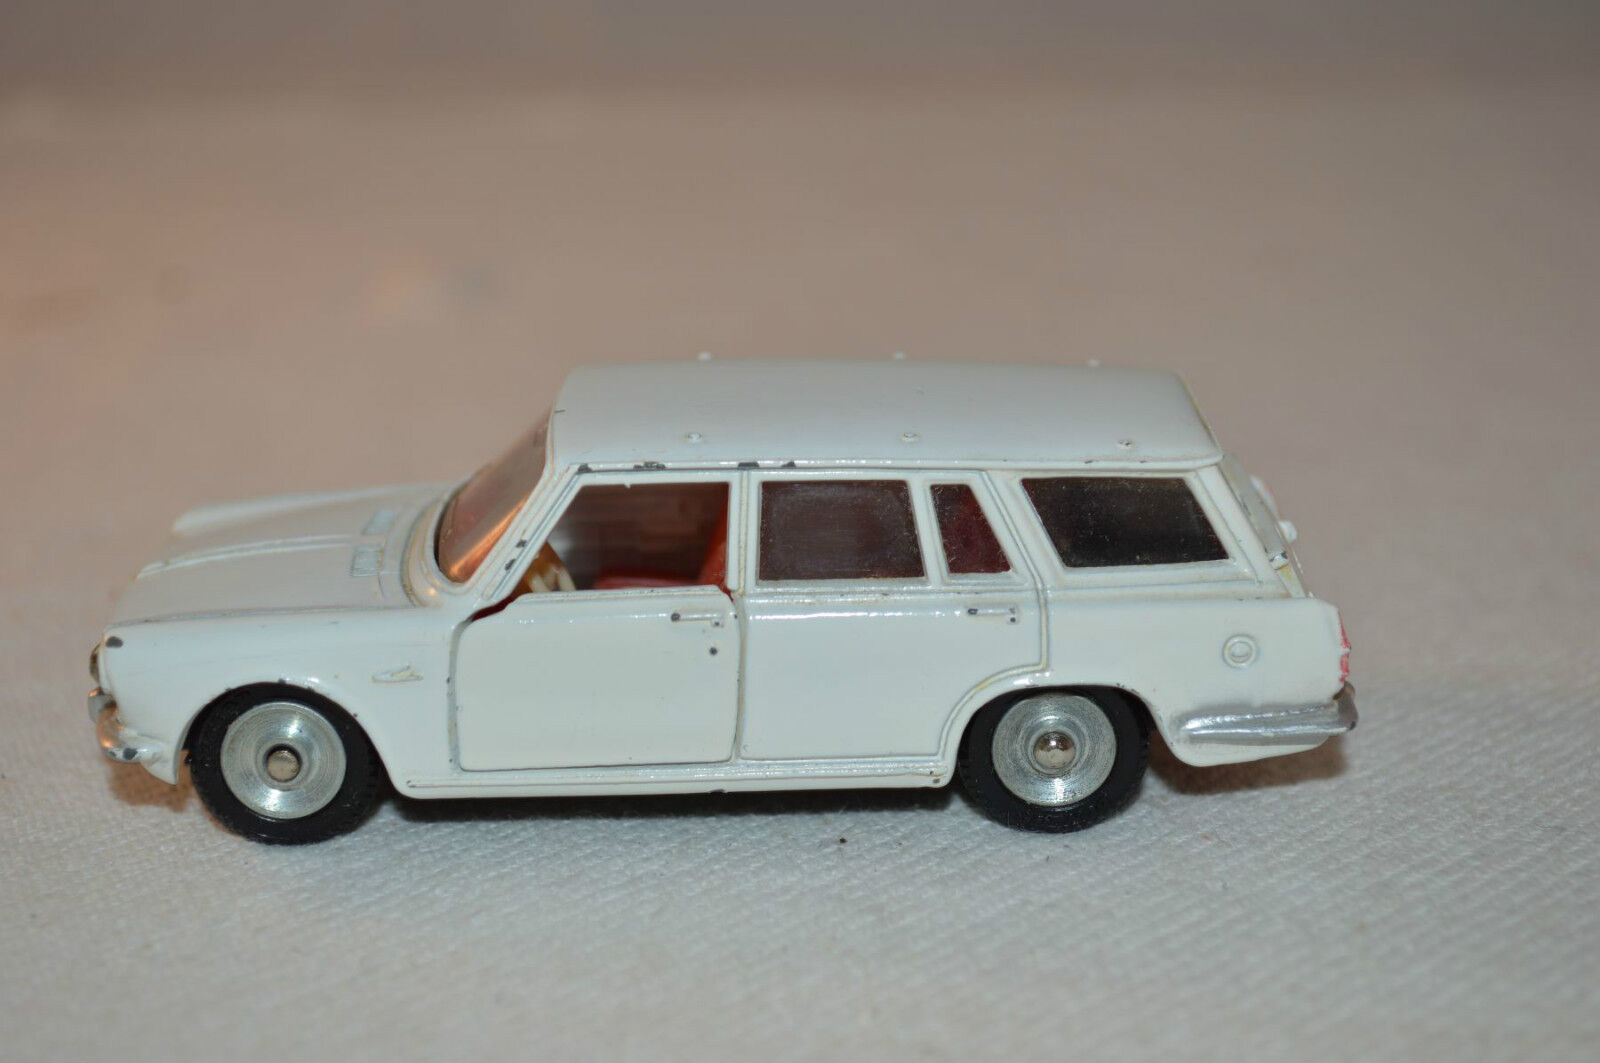 minorista de fitness Dinky Juguetes 507 507 507 Simca 1500 GLS Break excellent plus all original condition  calidad auténtica